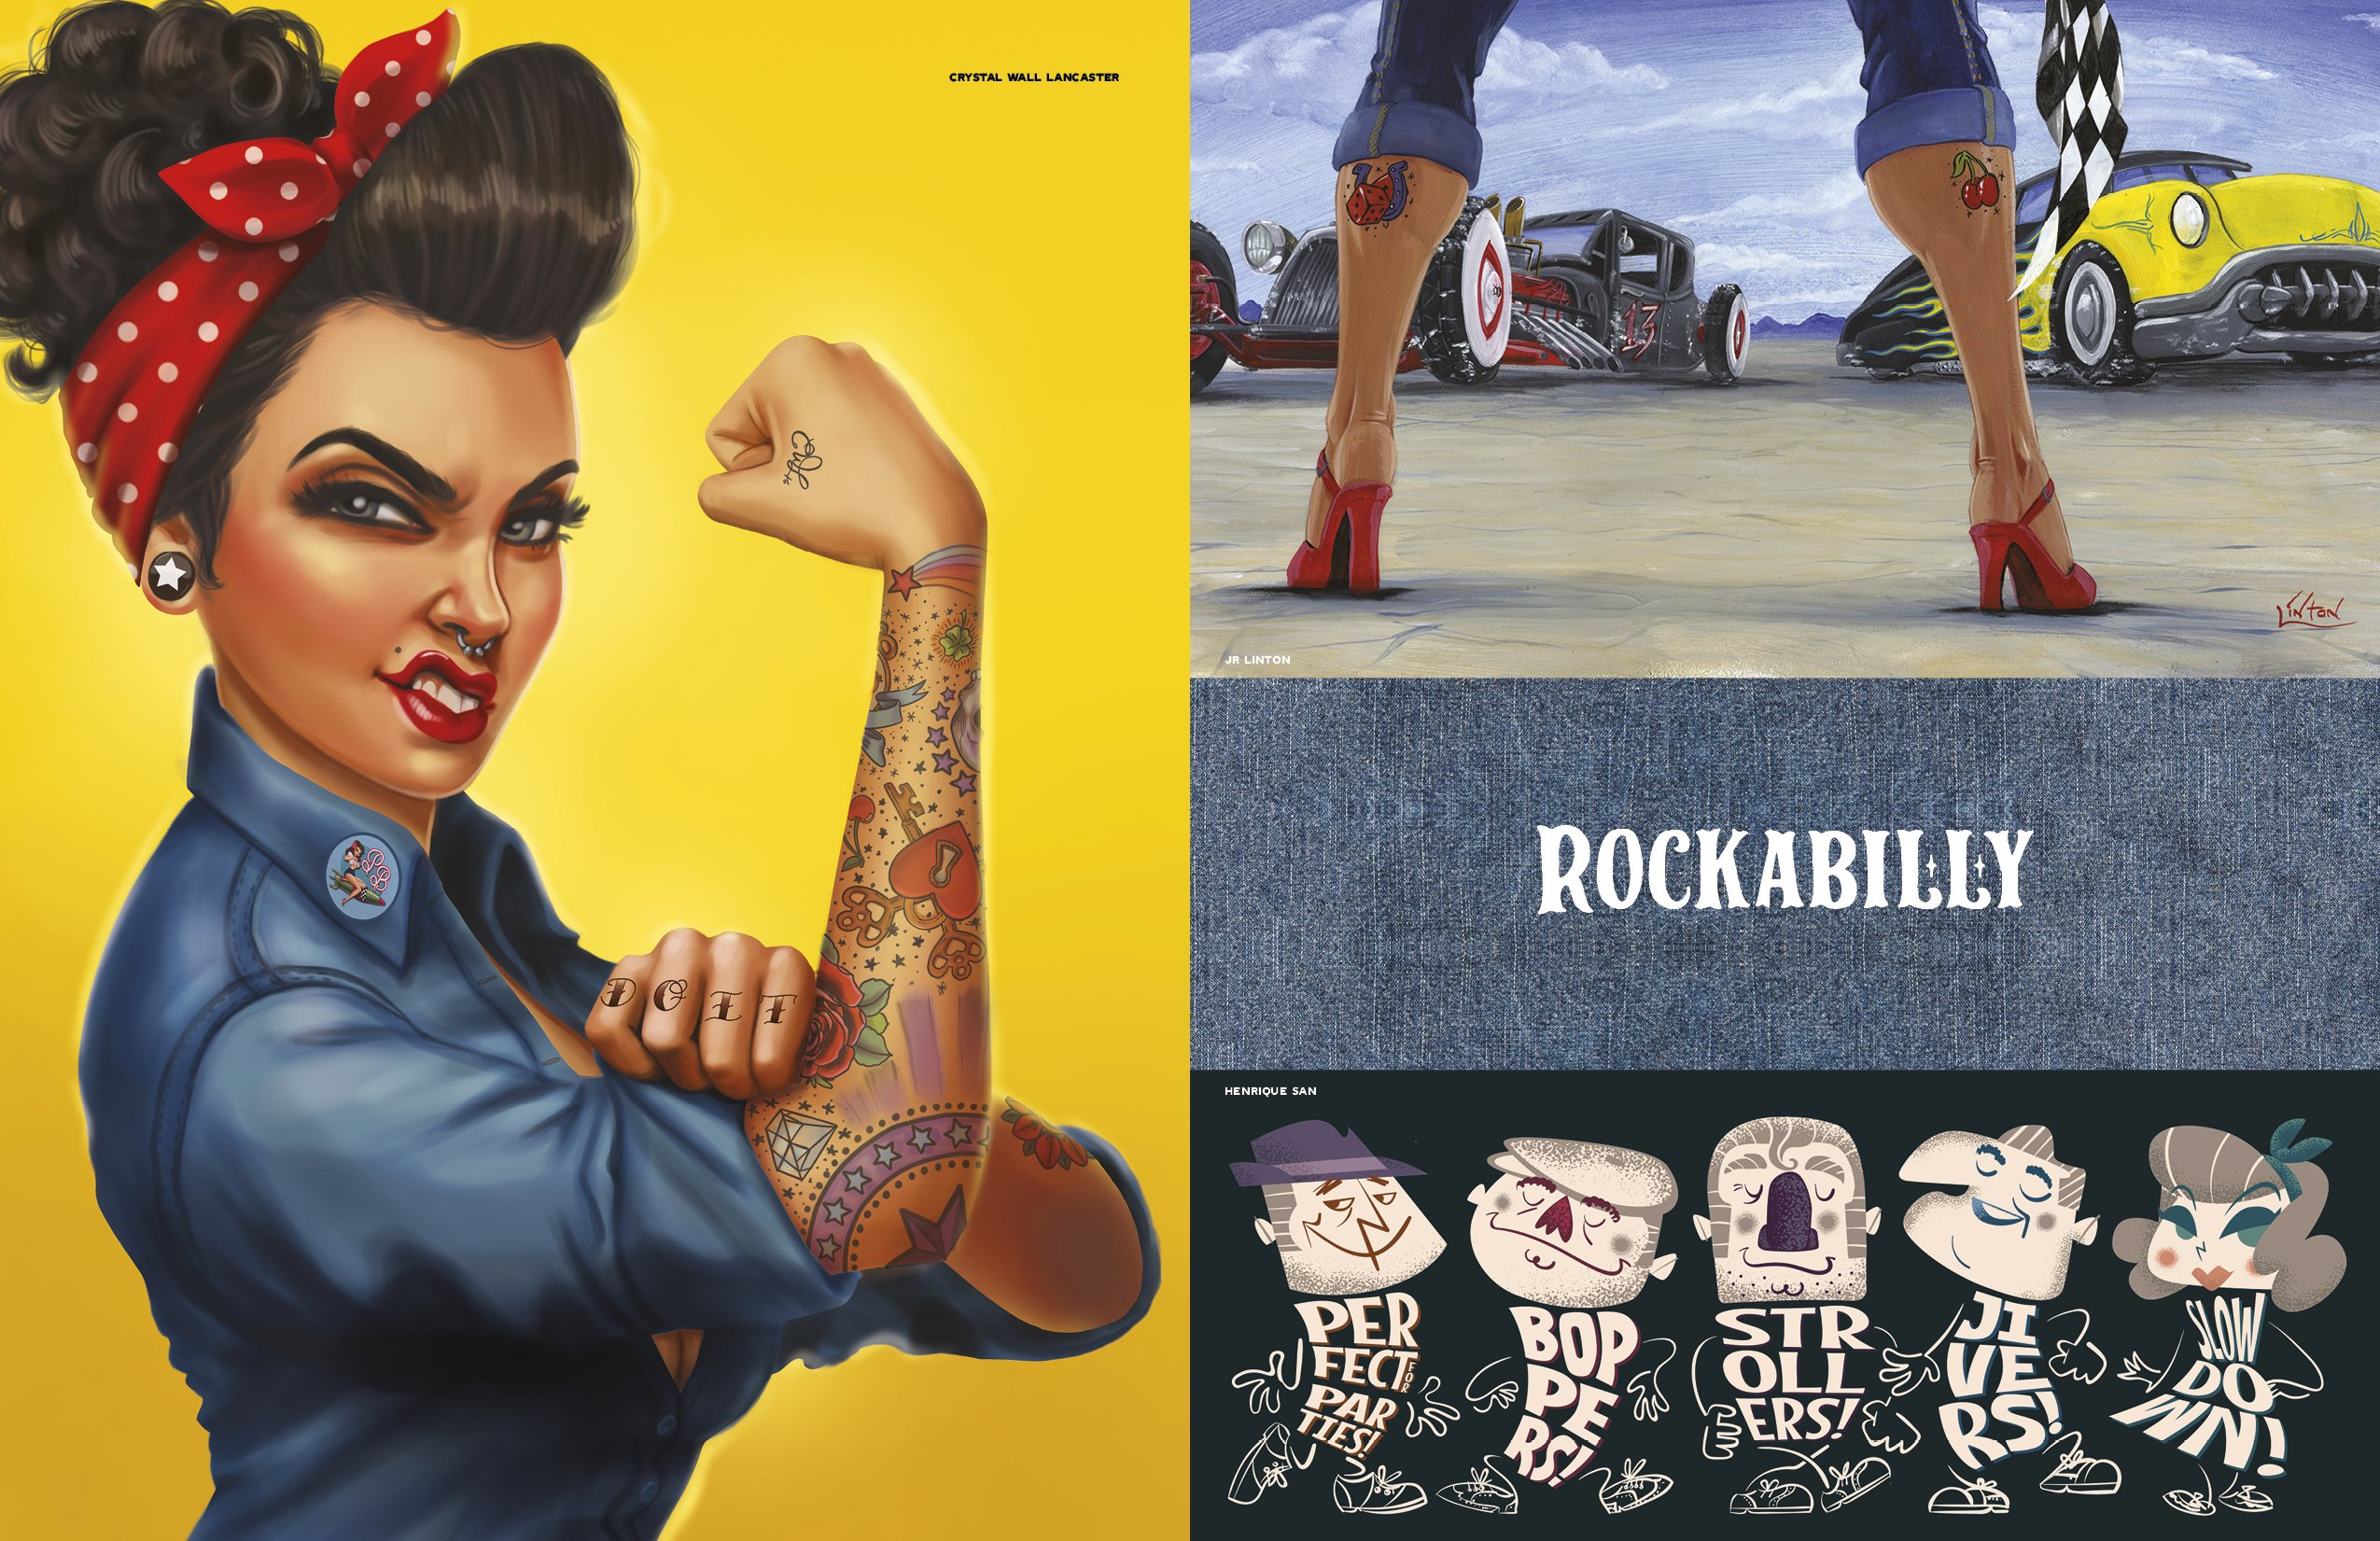 Join. And Rockabilly girls bent over cars your